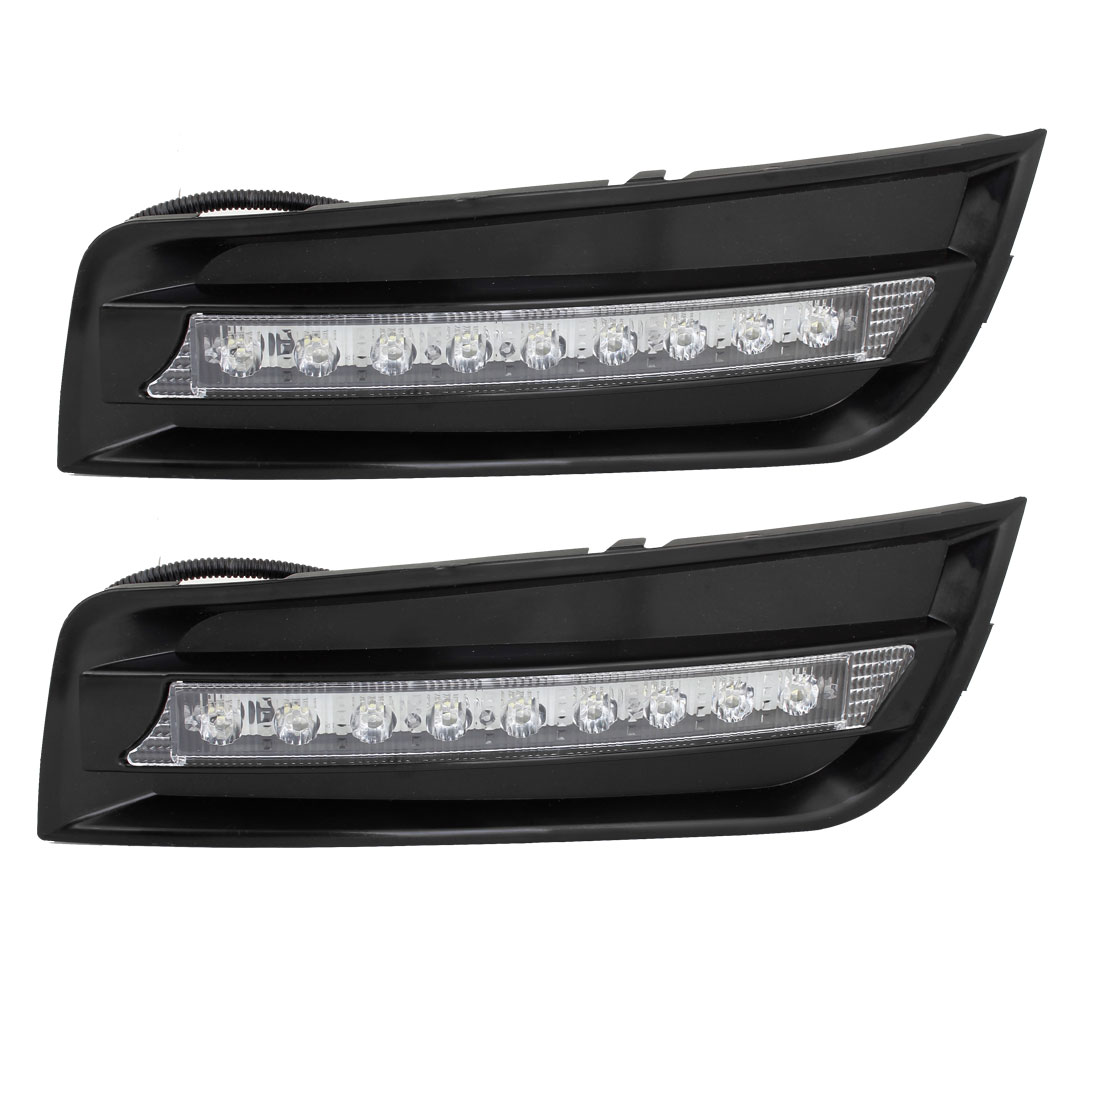 2 Pcs 12V White 9 LEDs DRL Daytime Running Lights Headlamp for Cruze